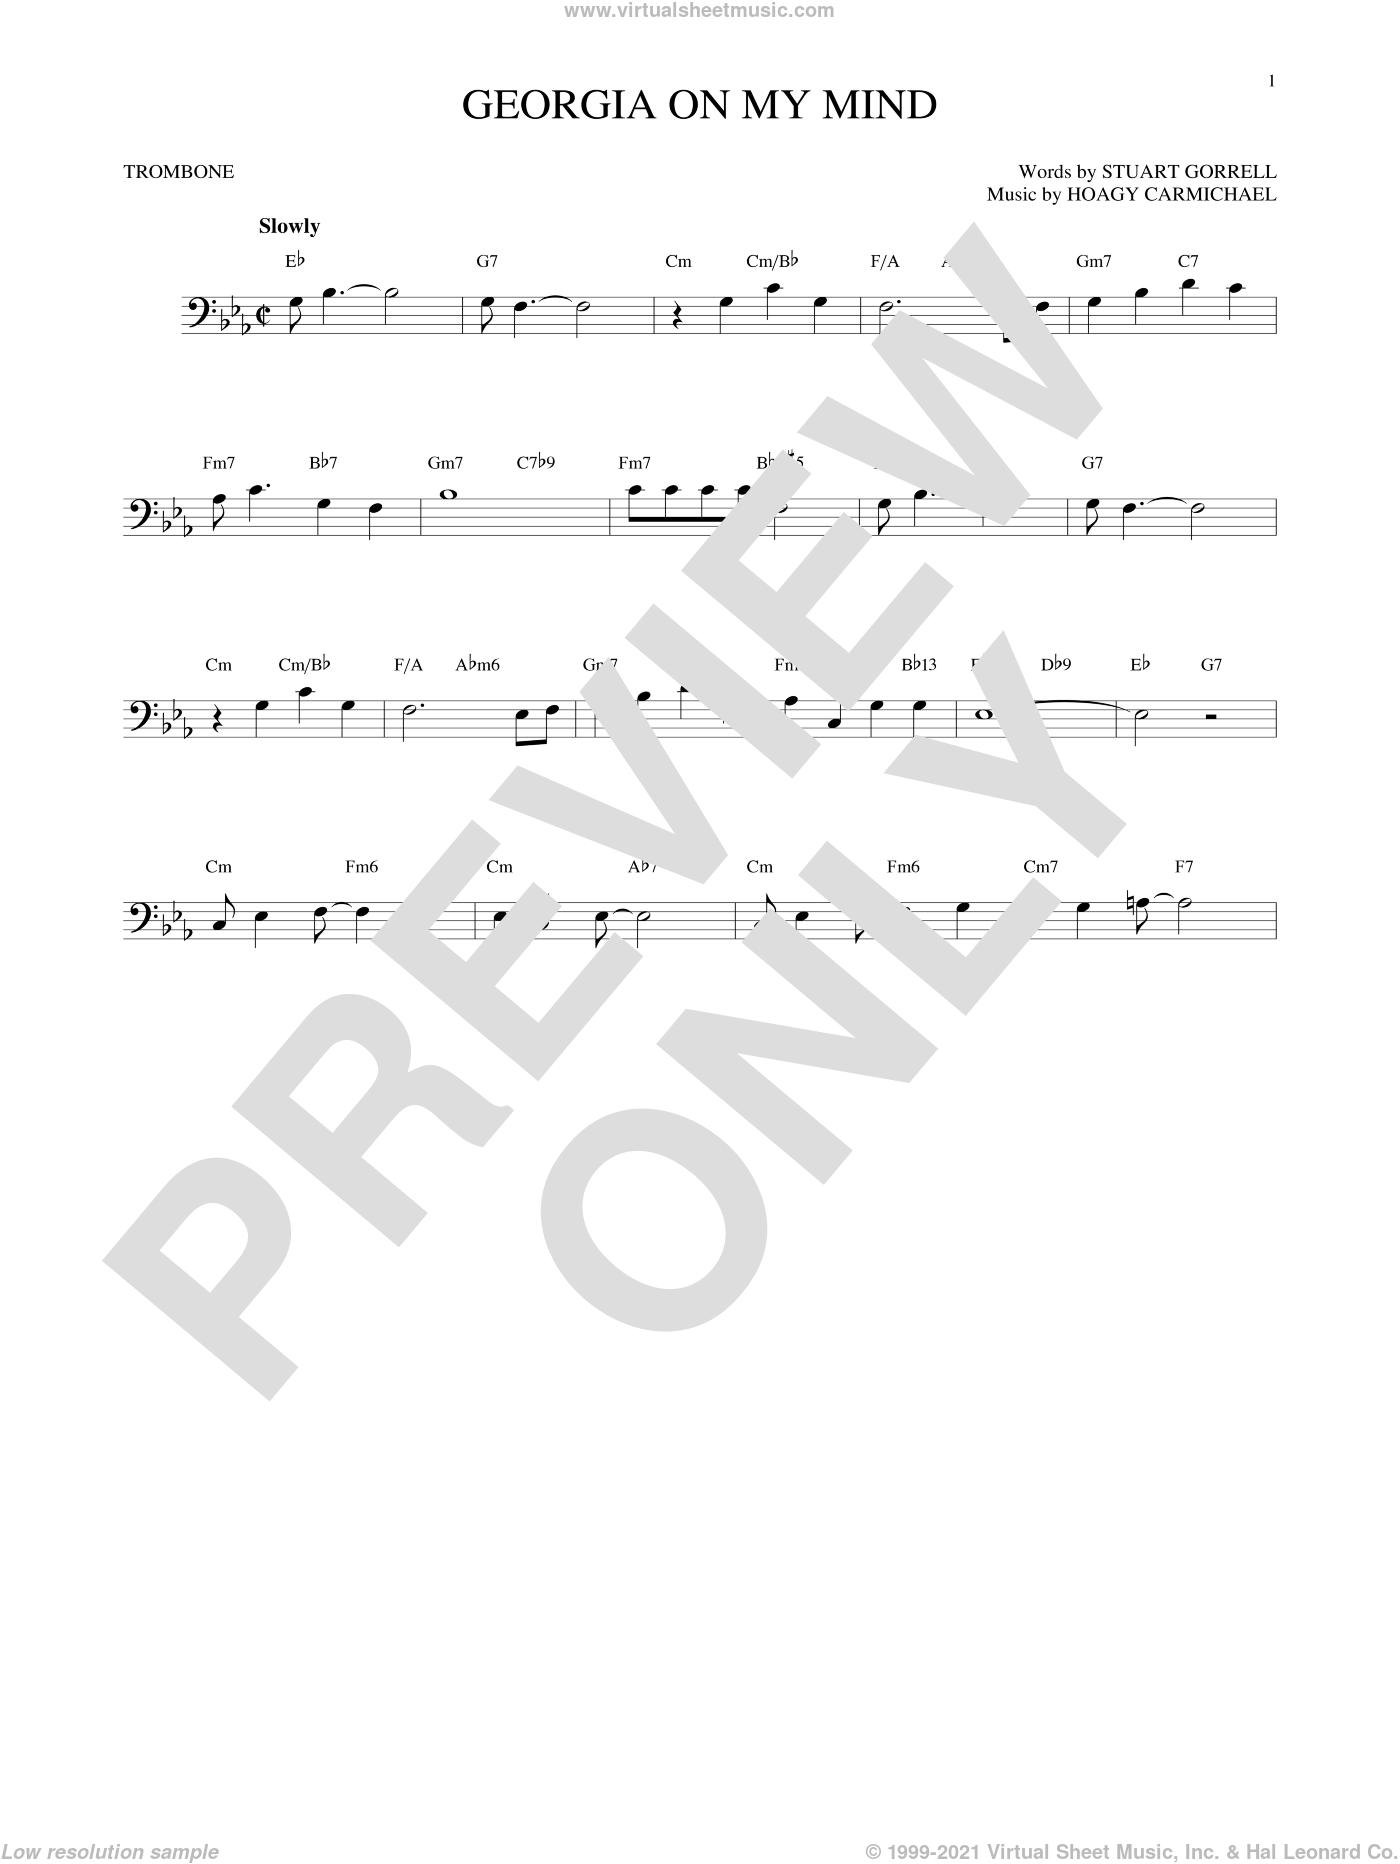 Georgia On My Mind sheet music for trombone solo by Stuart Gorrell